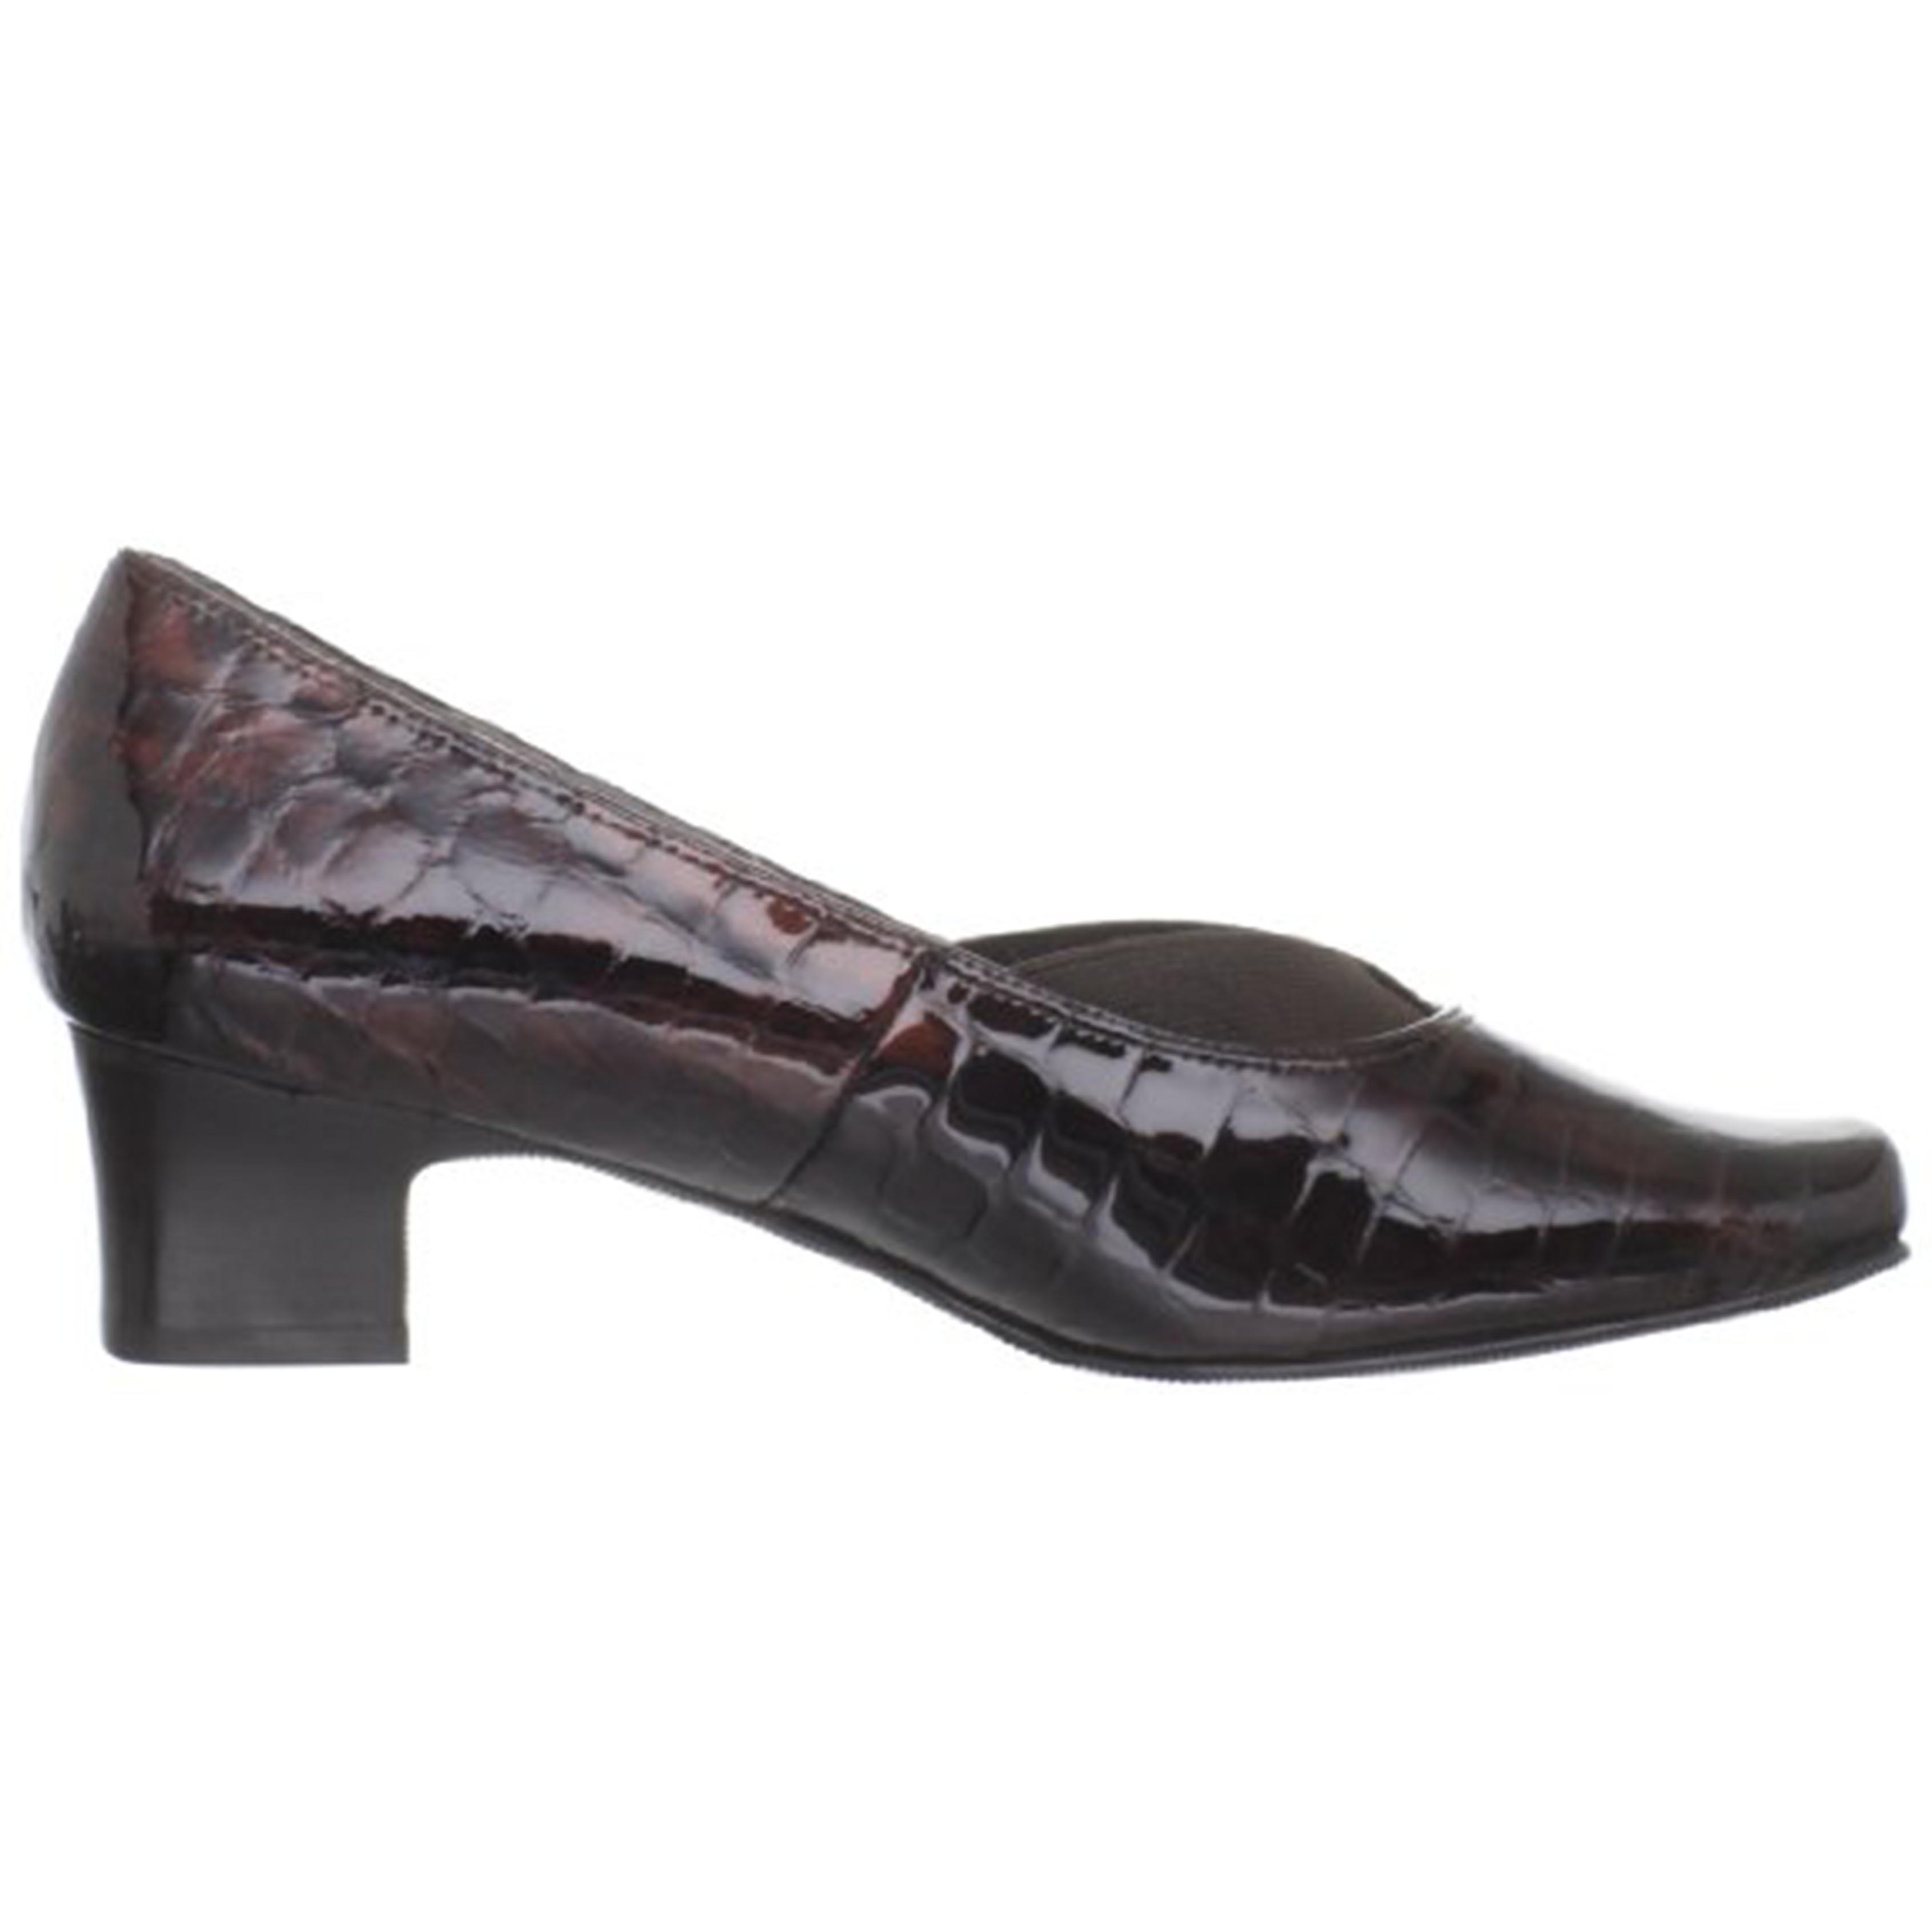 Ros Hommerson Shoes